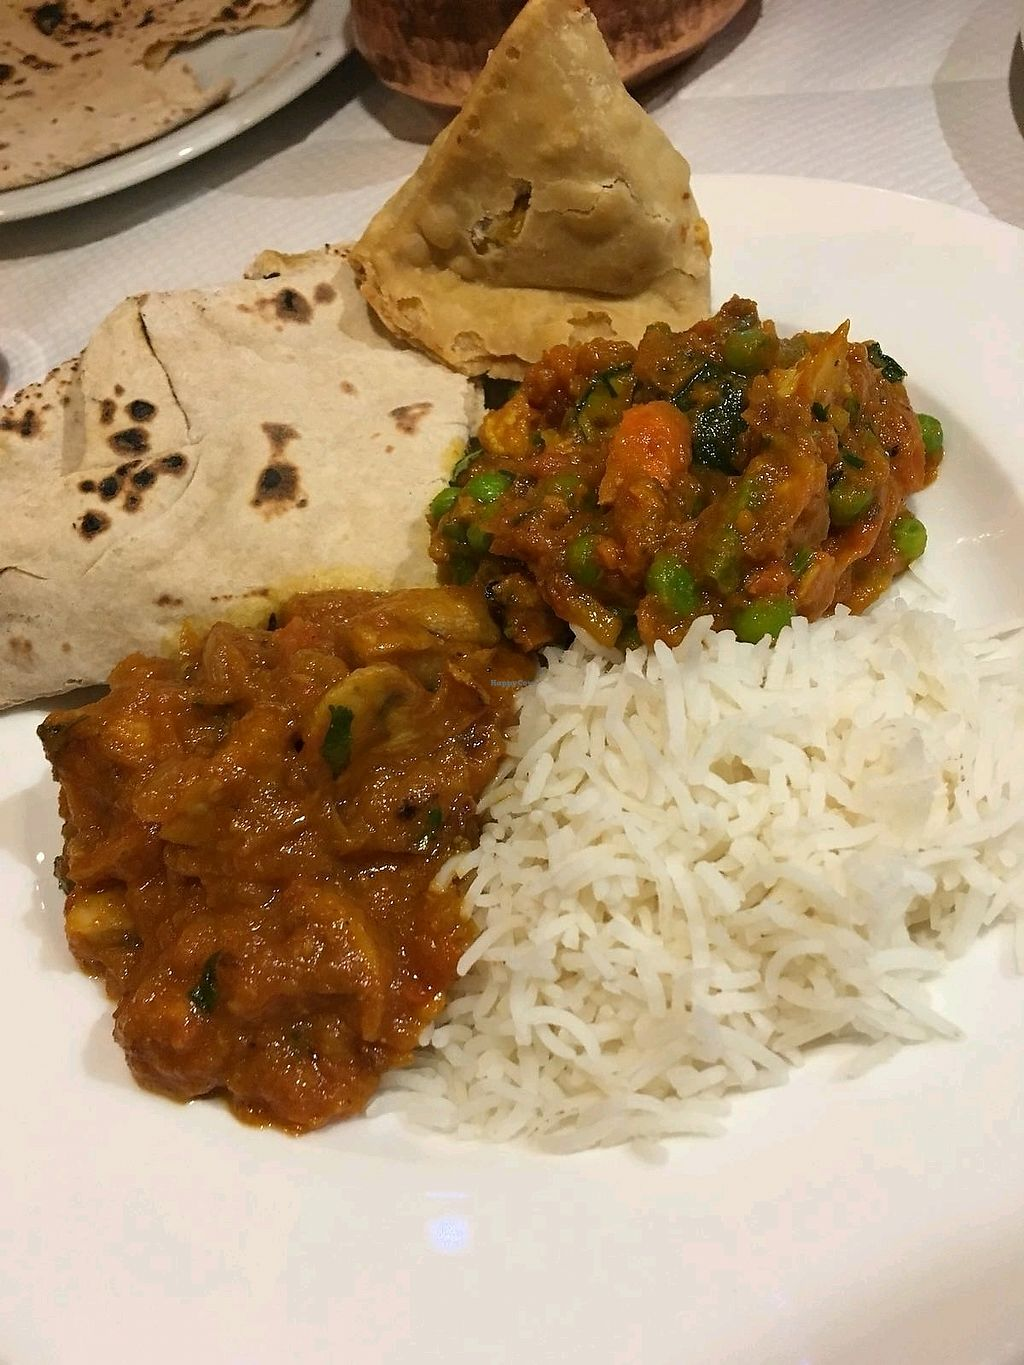 """Photo of Annapurna  by <a href=""""/members/profile/EmmaNibbs"""">EmmaNibbs</a> <br/>Chapatis, veg samosa, mushroom bajee, basmati rice and another veg curry we can't remember the name of: <br/> March 18, 2018  - <a href='/contact/abuse/image/26359/372589'>Report</a>"""